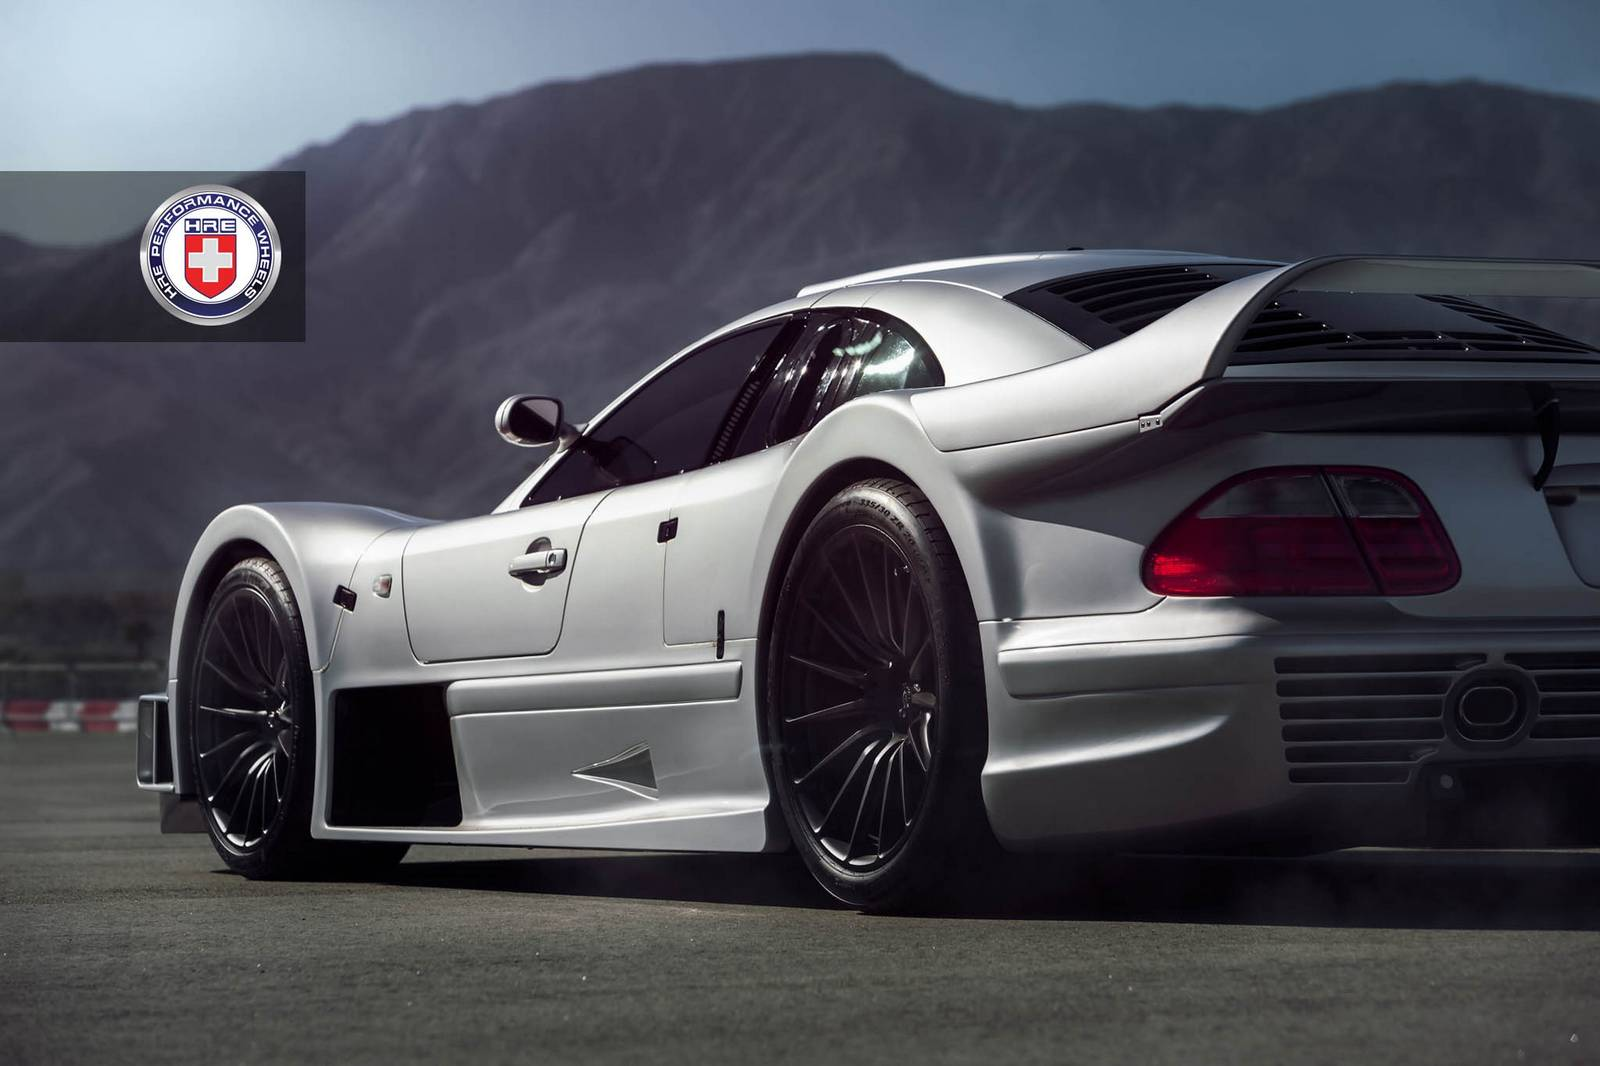 Stunning mercedes benz clk gtr with satin black hre wheels for Pictures of a mercedes benz